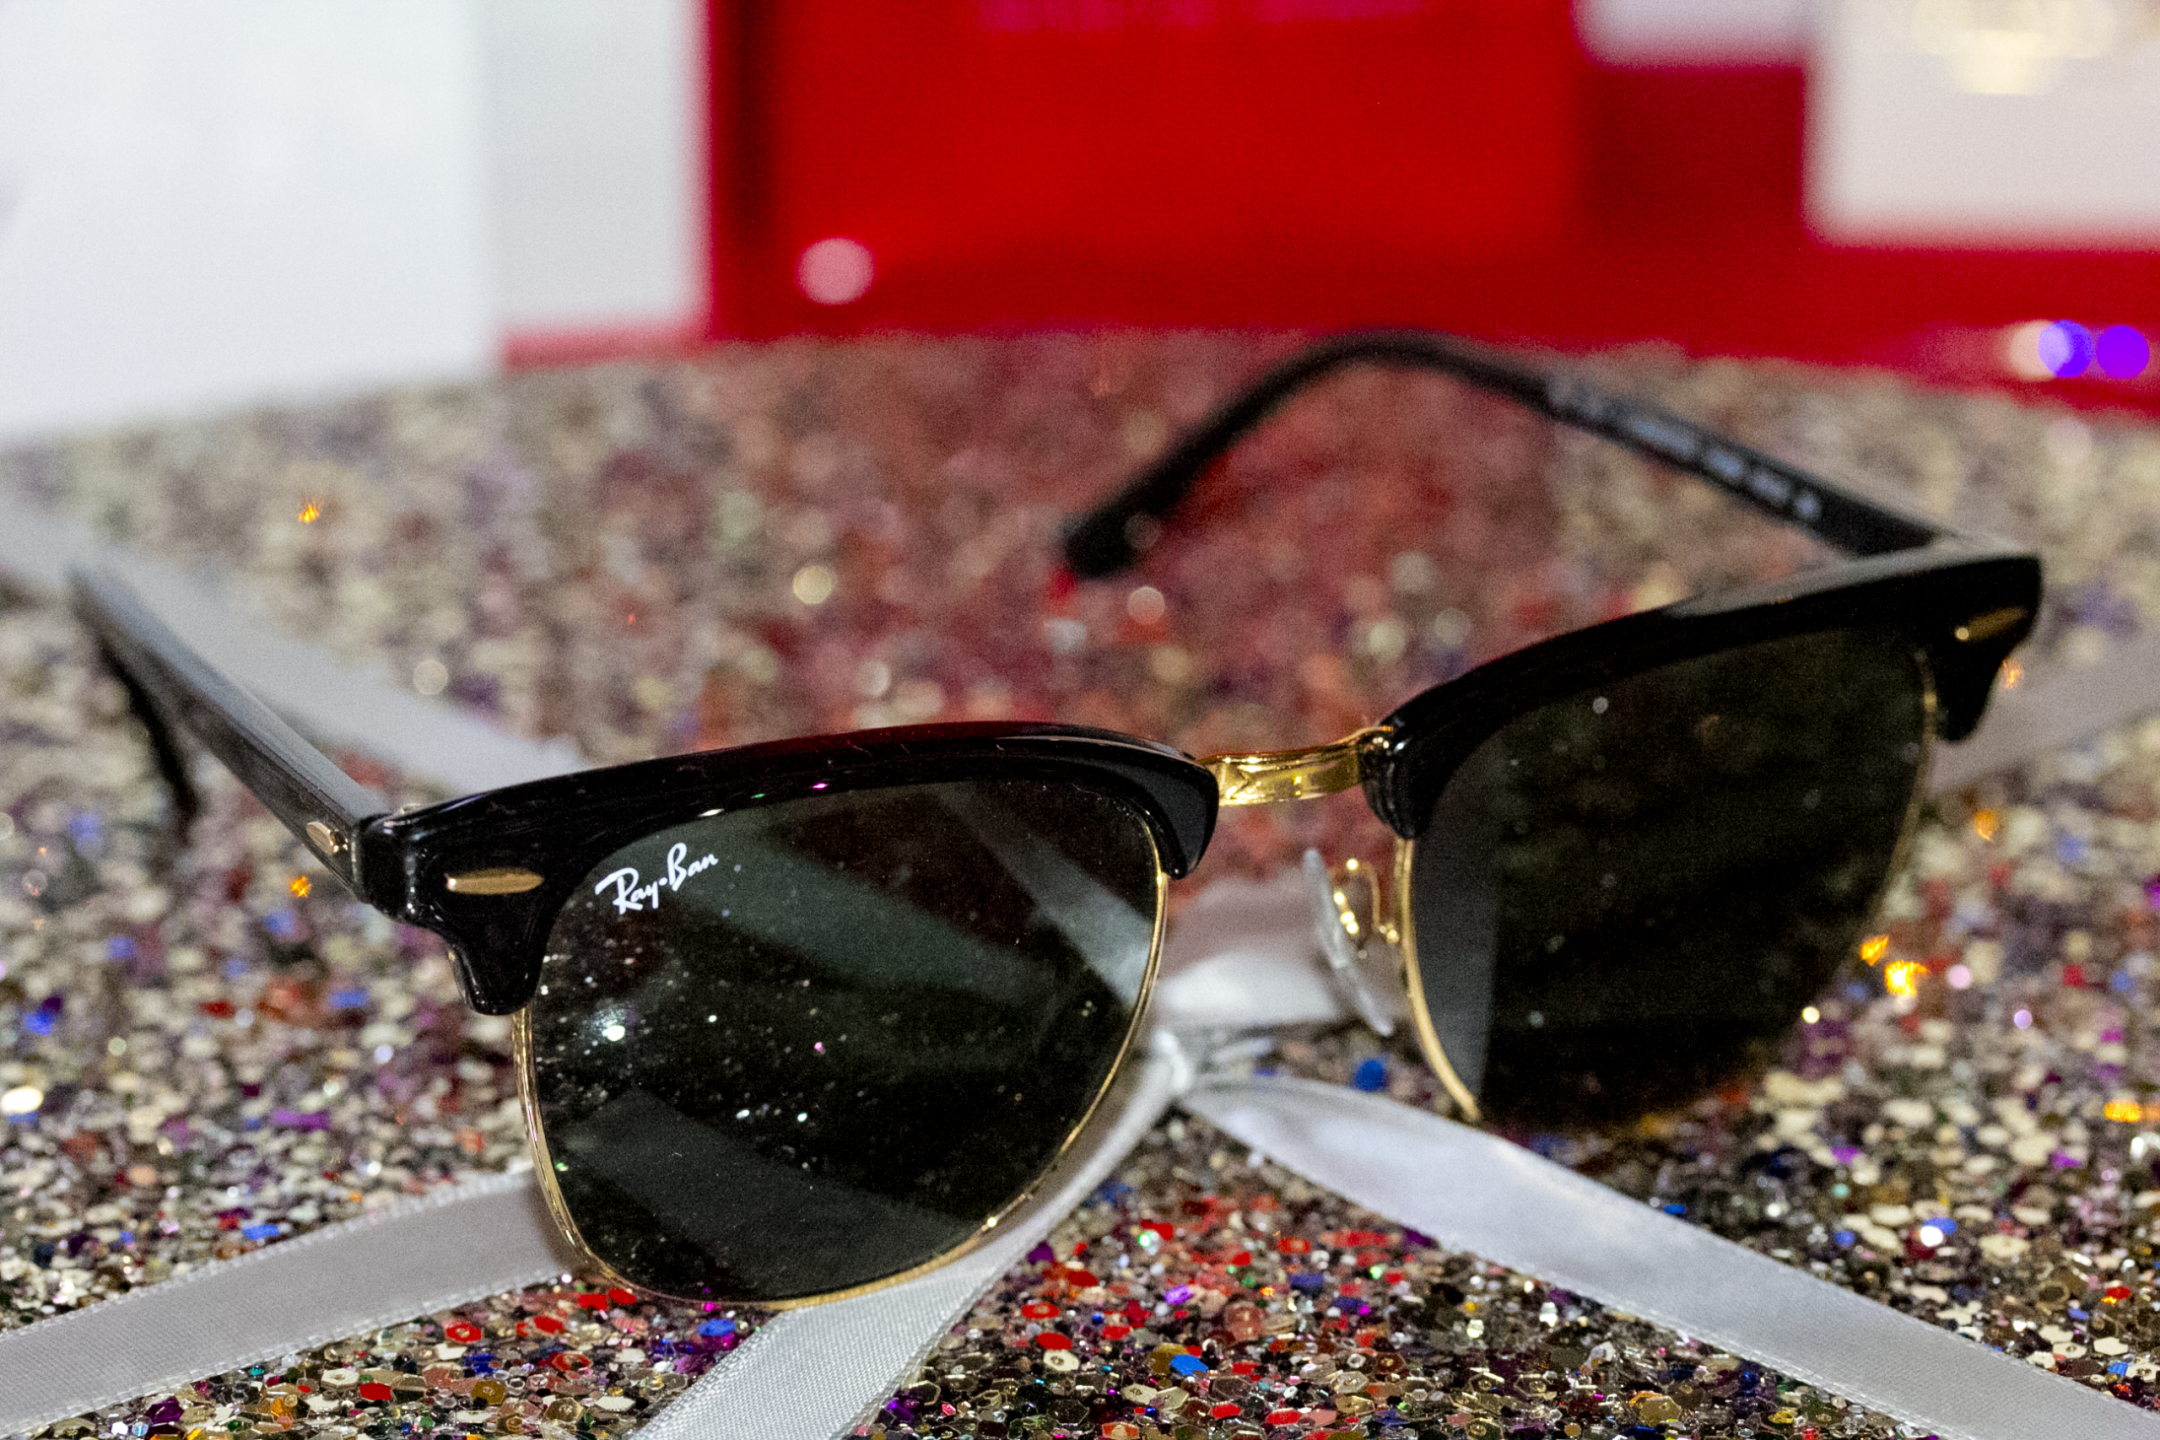 Ray Ban black clubmaster sunglasses favorite gift guide for the holidays